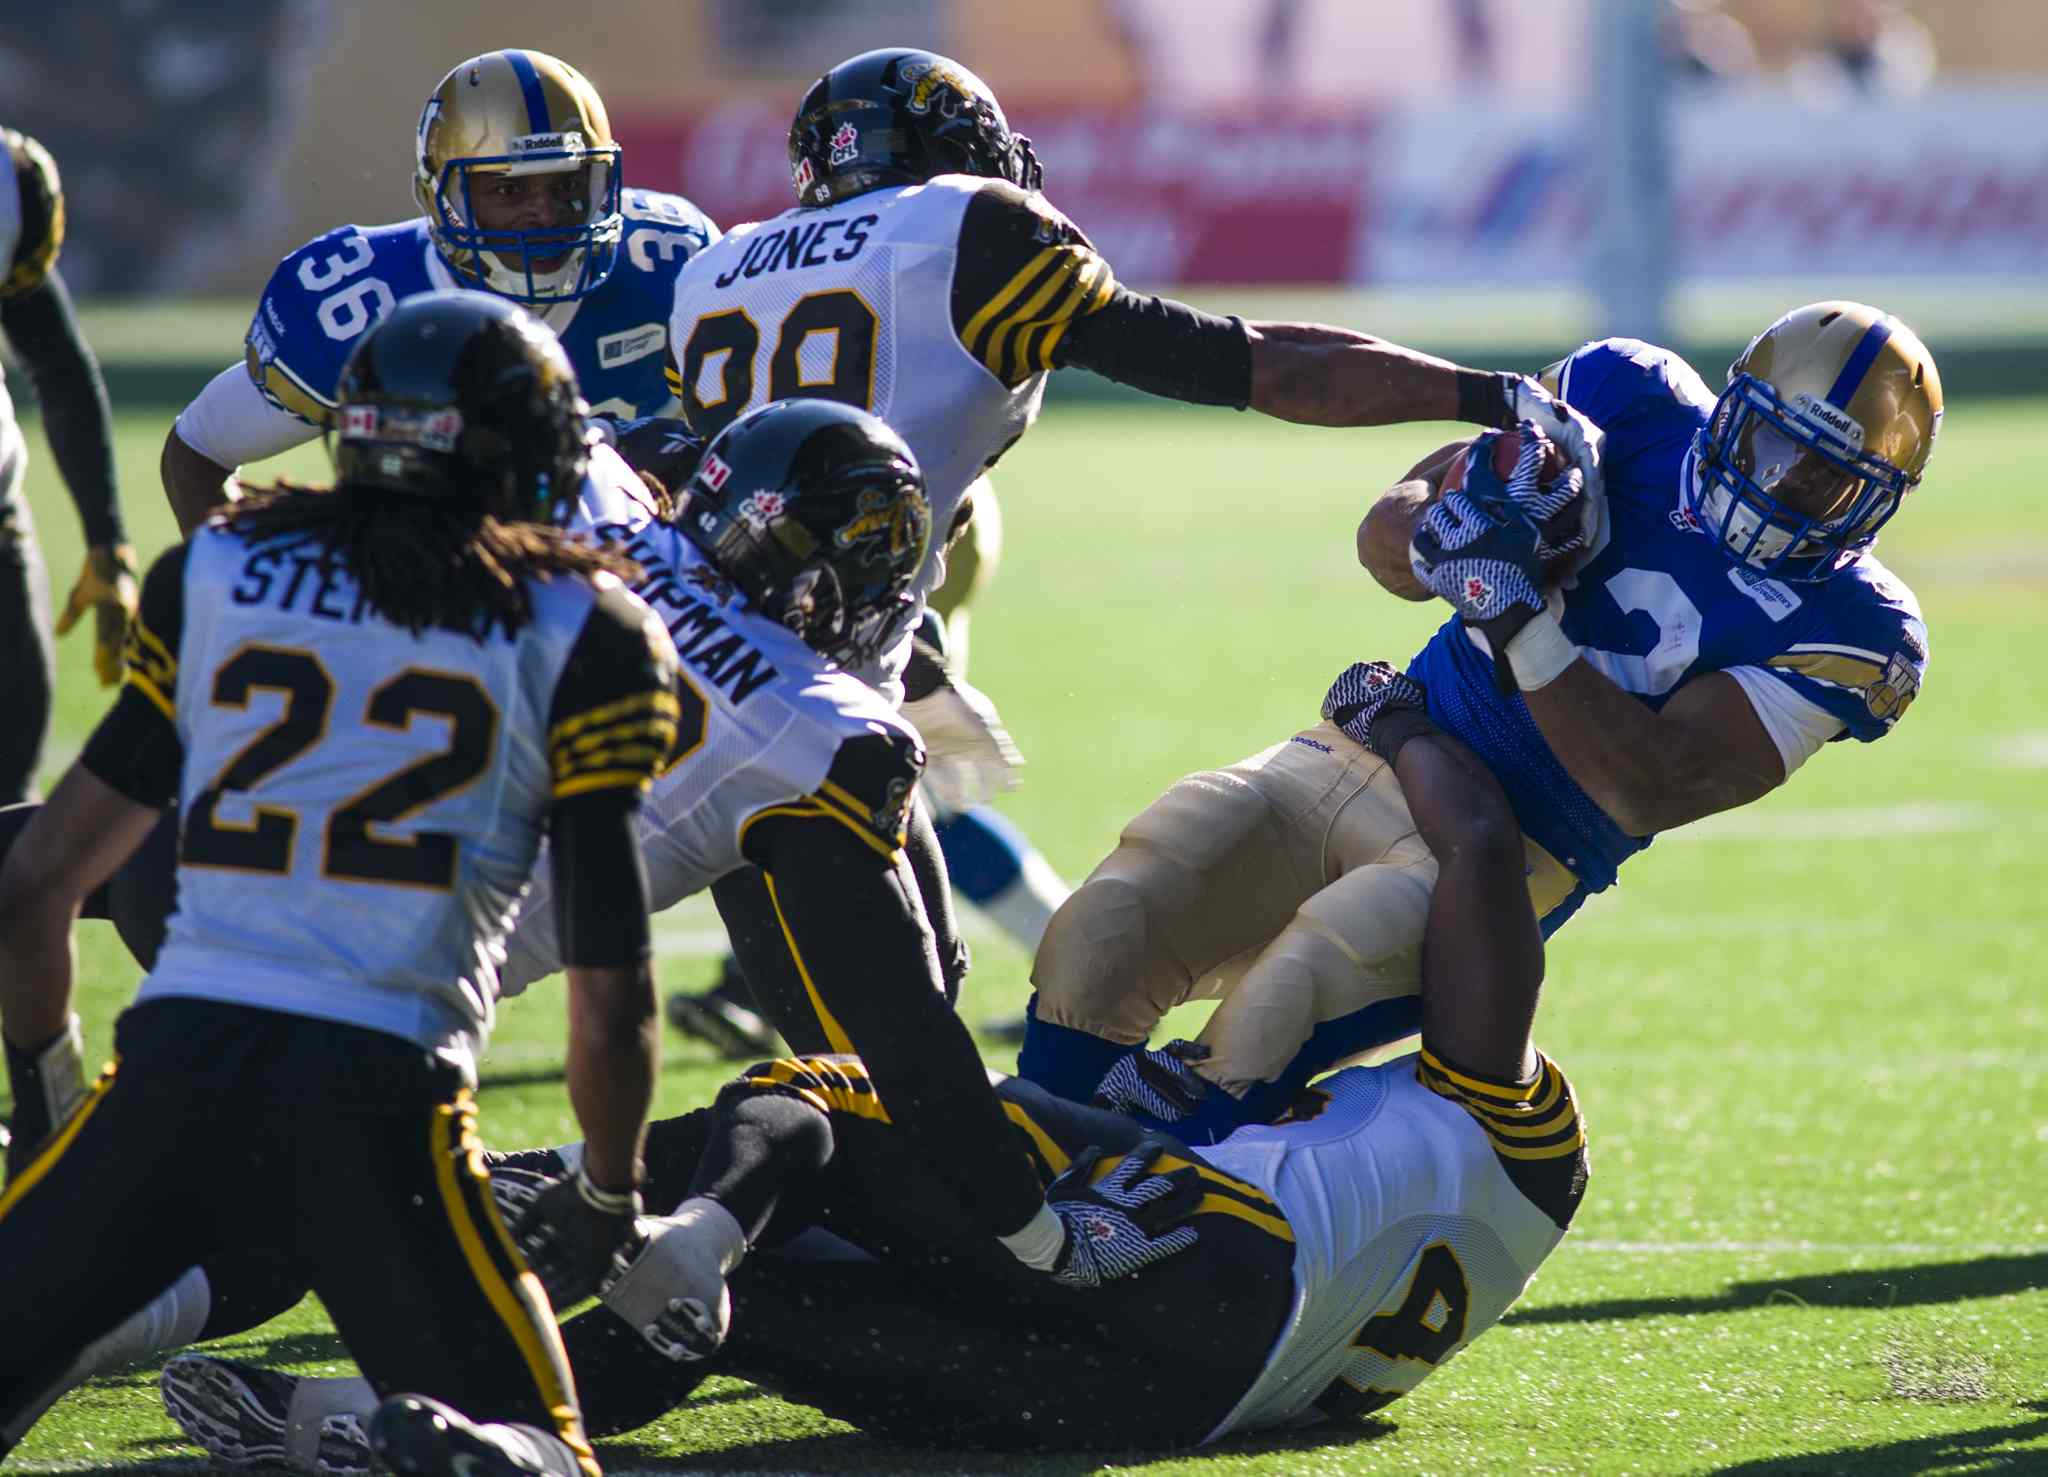 The Winnipeg Blue Bombers Mario Fannin (#32) is taken down by Hamilton Tiger-Cats Onrea Jones (89).